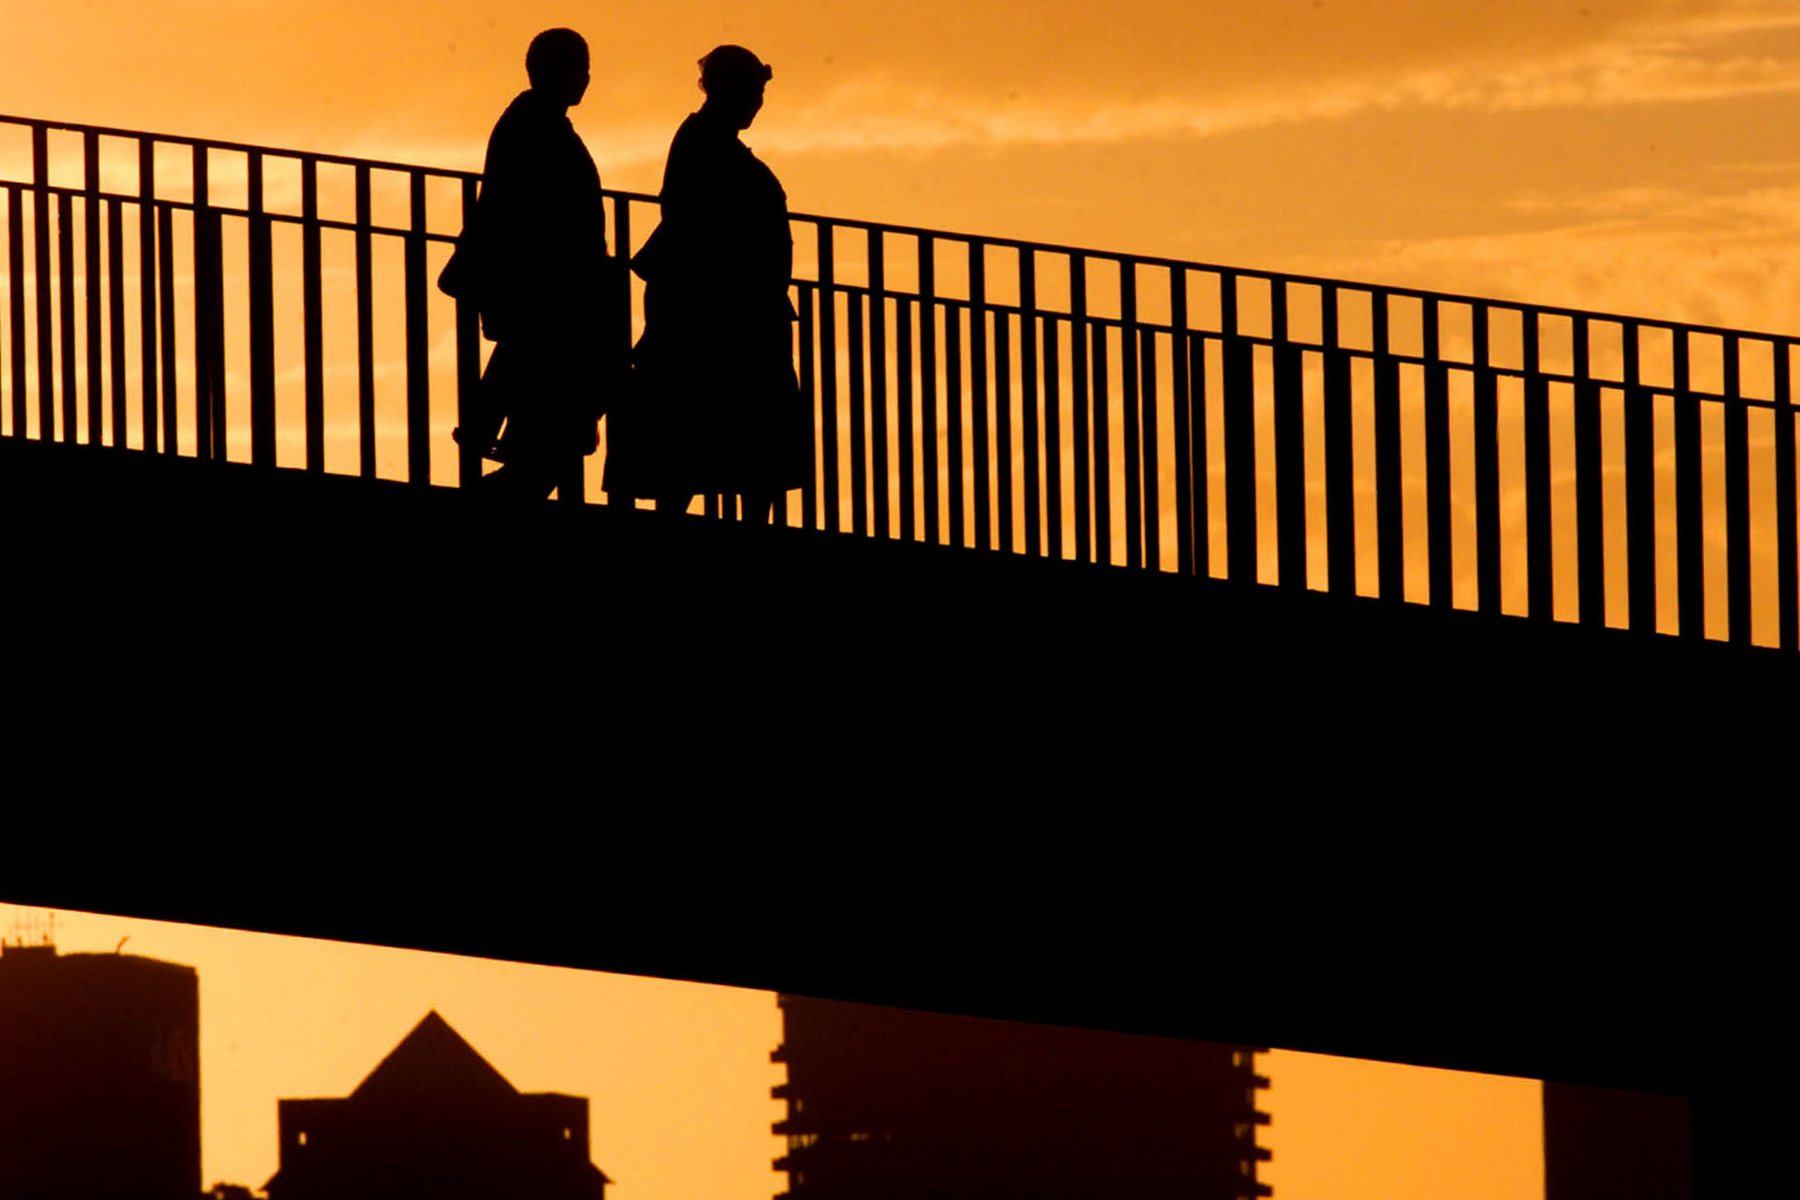 July 2002: Two domestic workers cross a bridge in Cape Town, backlit by the sun setting over the city as they return home. (Photograph by Reuters/ Mike Hutchings)